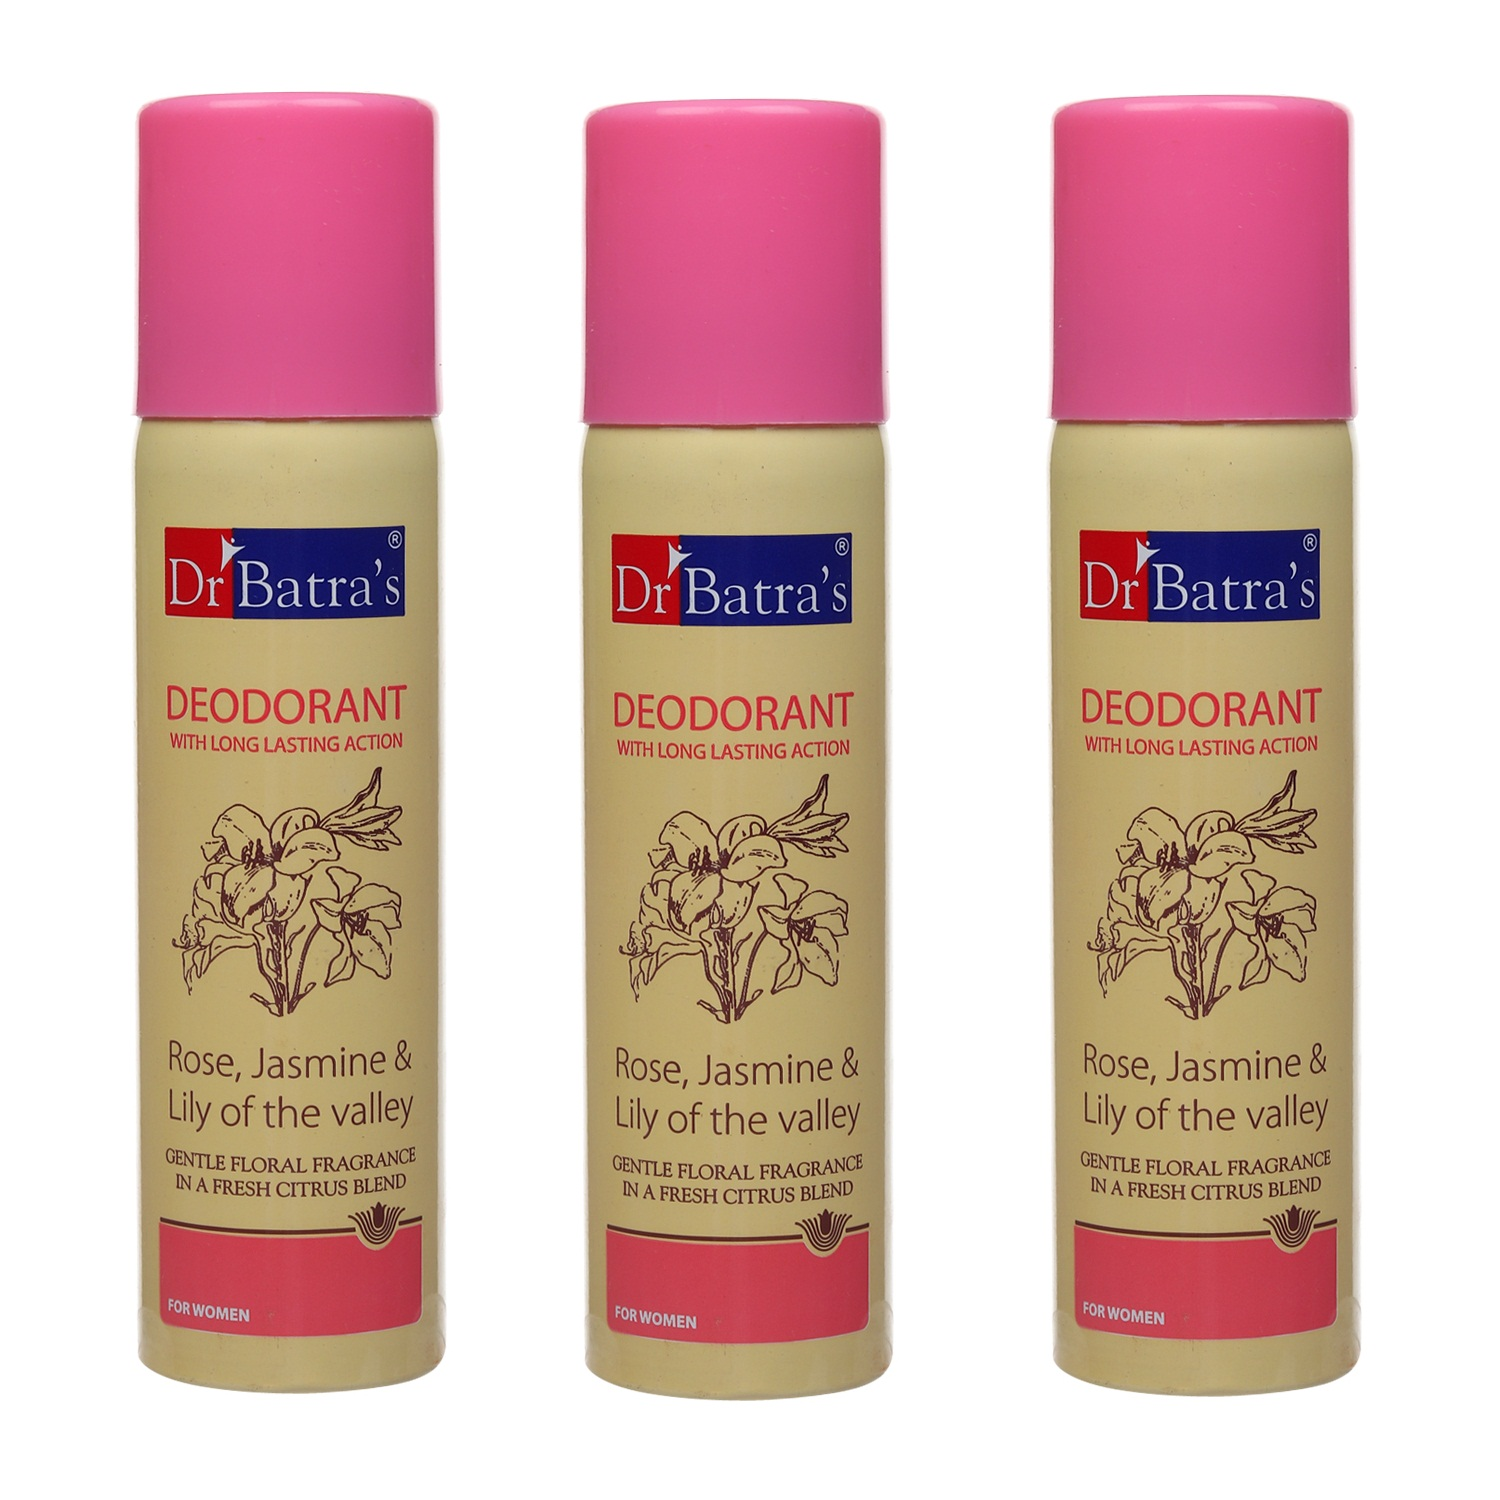 Dr Batra's | Dr Batra's Deodarant With Long Lasting Action Rose, Jasmine & Lily Of The Valley - 100 gm (Pack of 3)